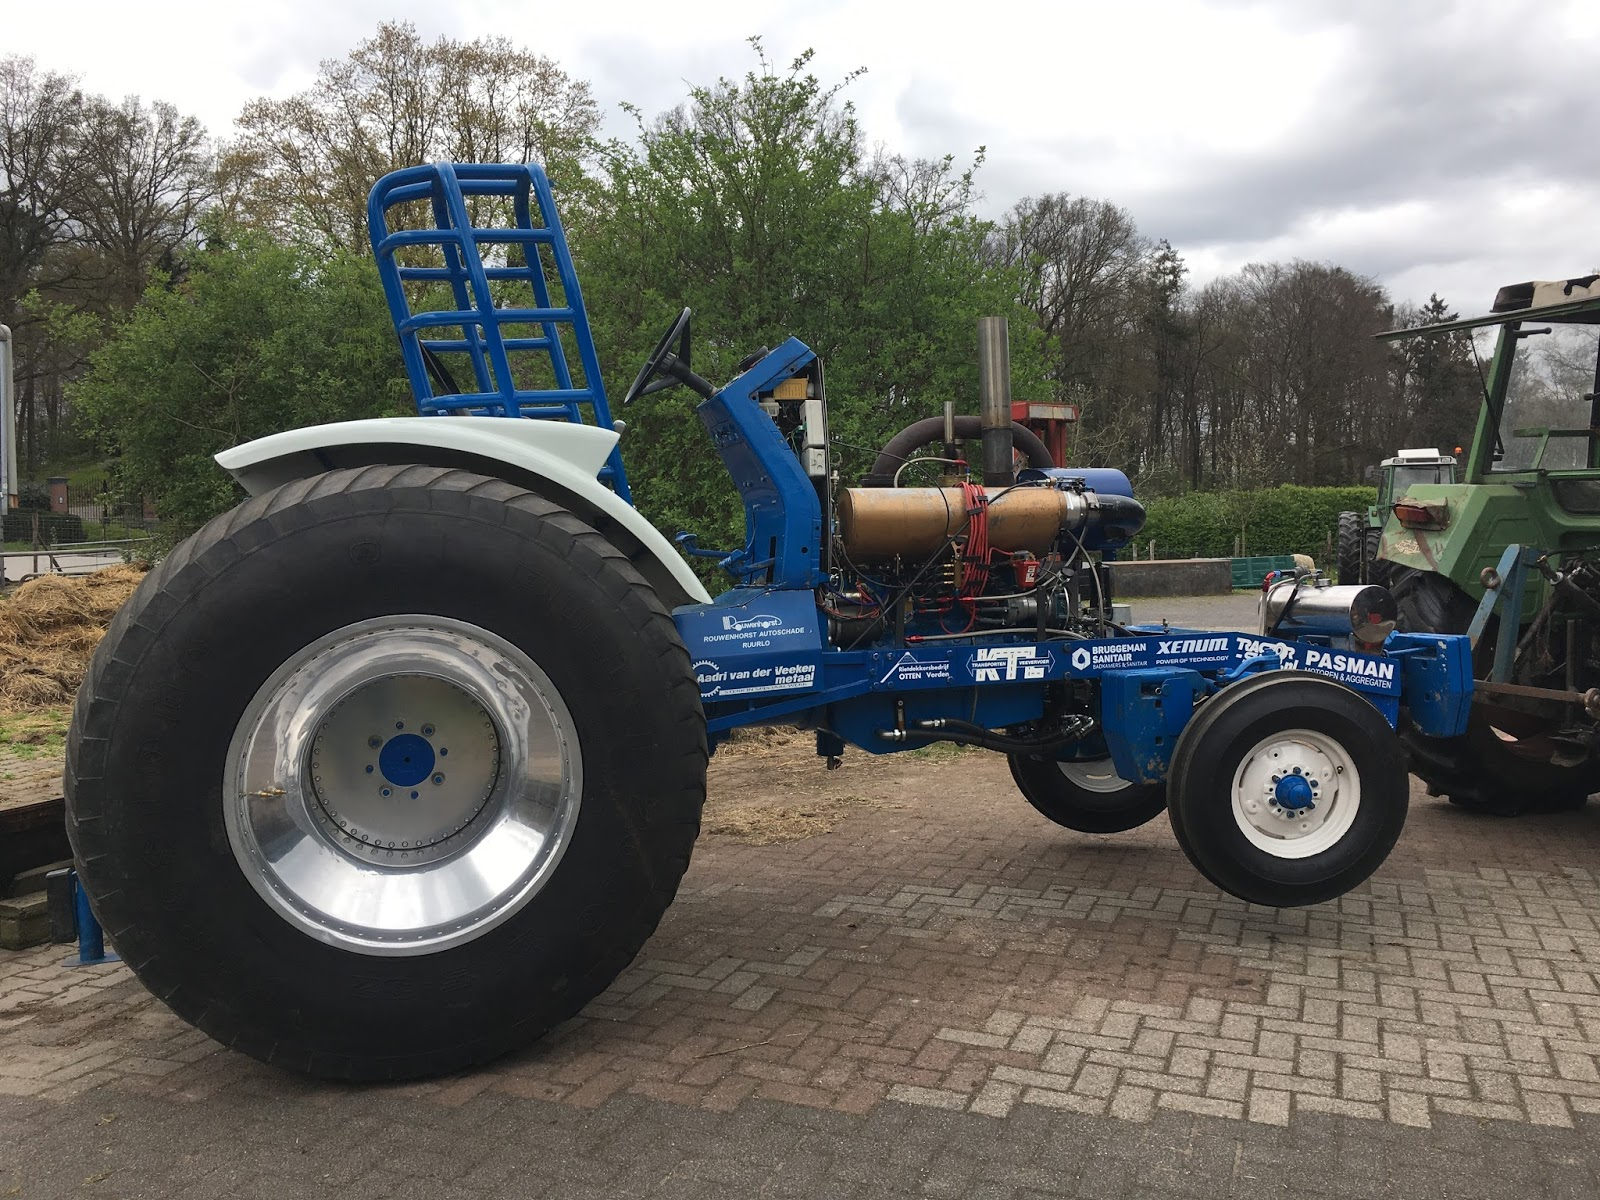 Tractor Pulling Tractor : Tractor pulling news pullingworld changes on iessel